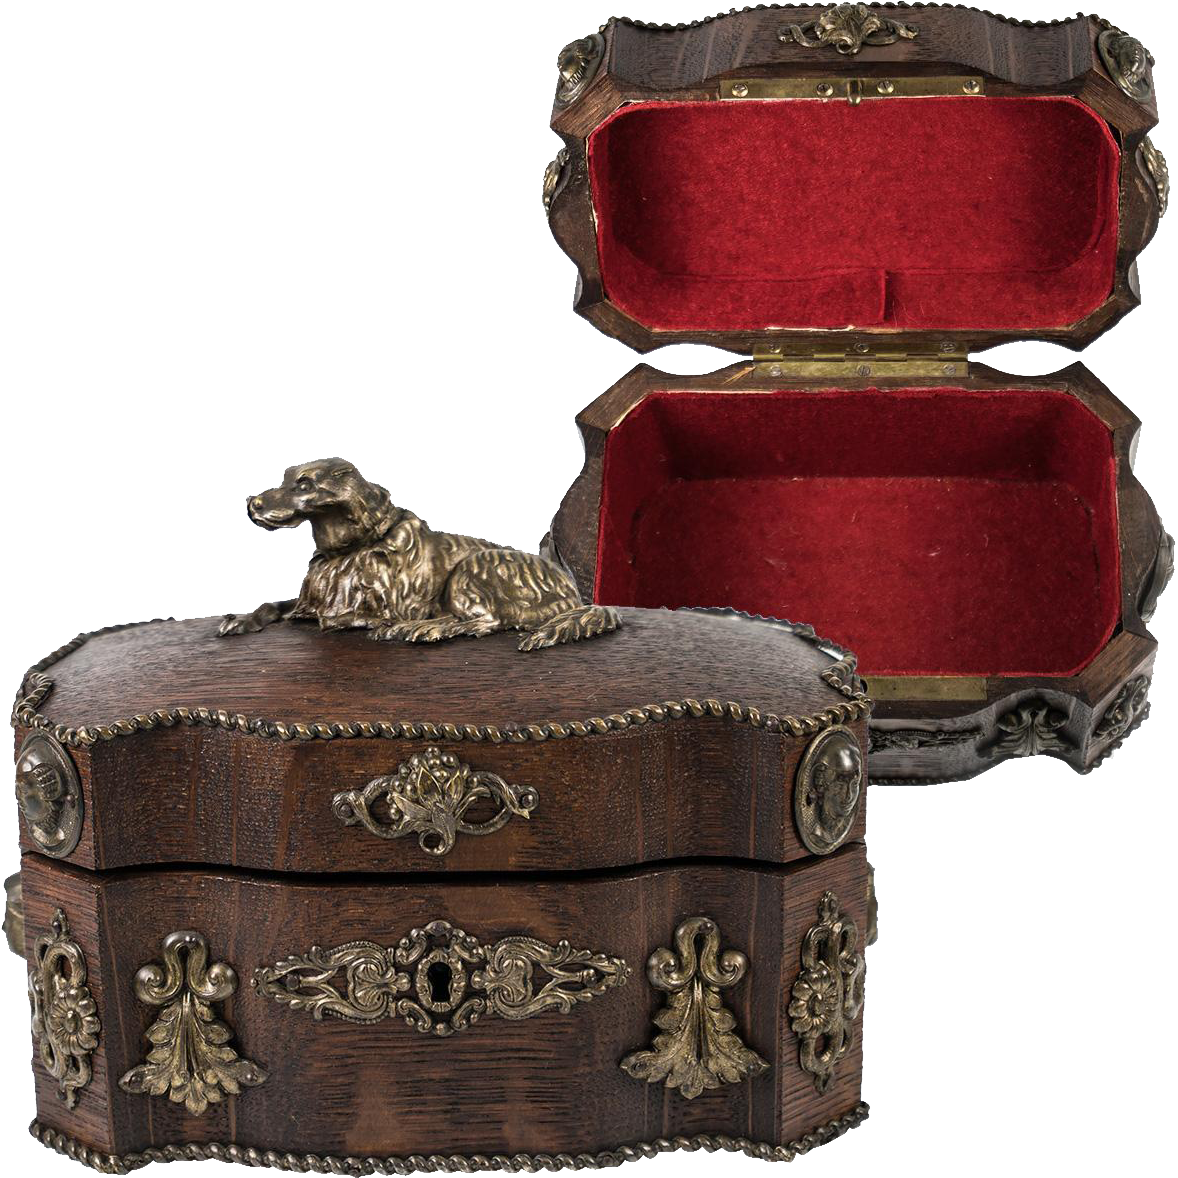 Antique French Jewelry Box Casket with Dog and Figural Appliques on